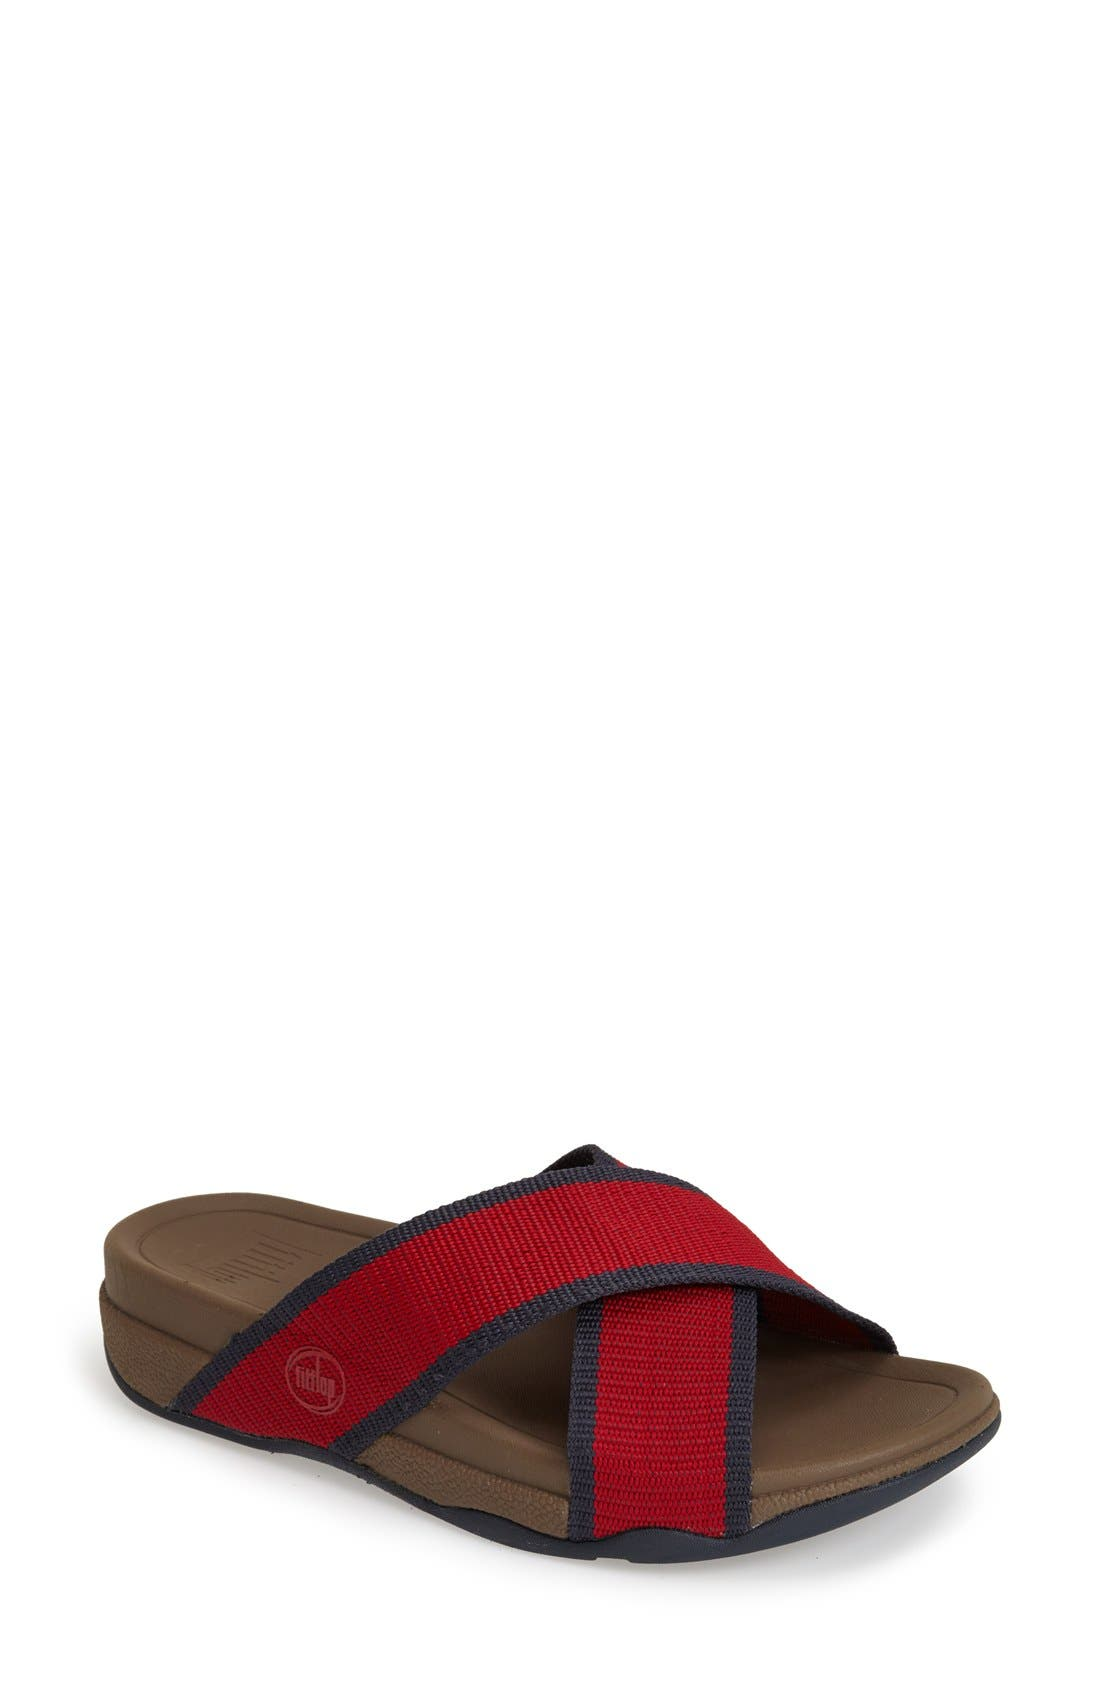 FitFlop Surfer Slide Sandal (Men)